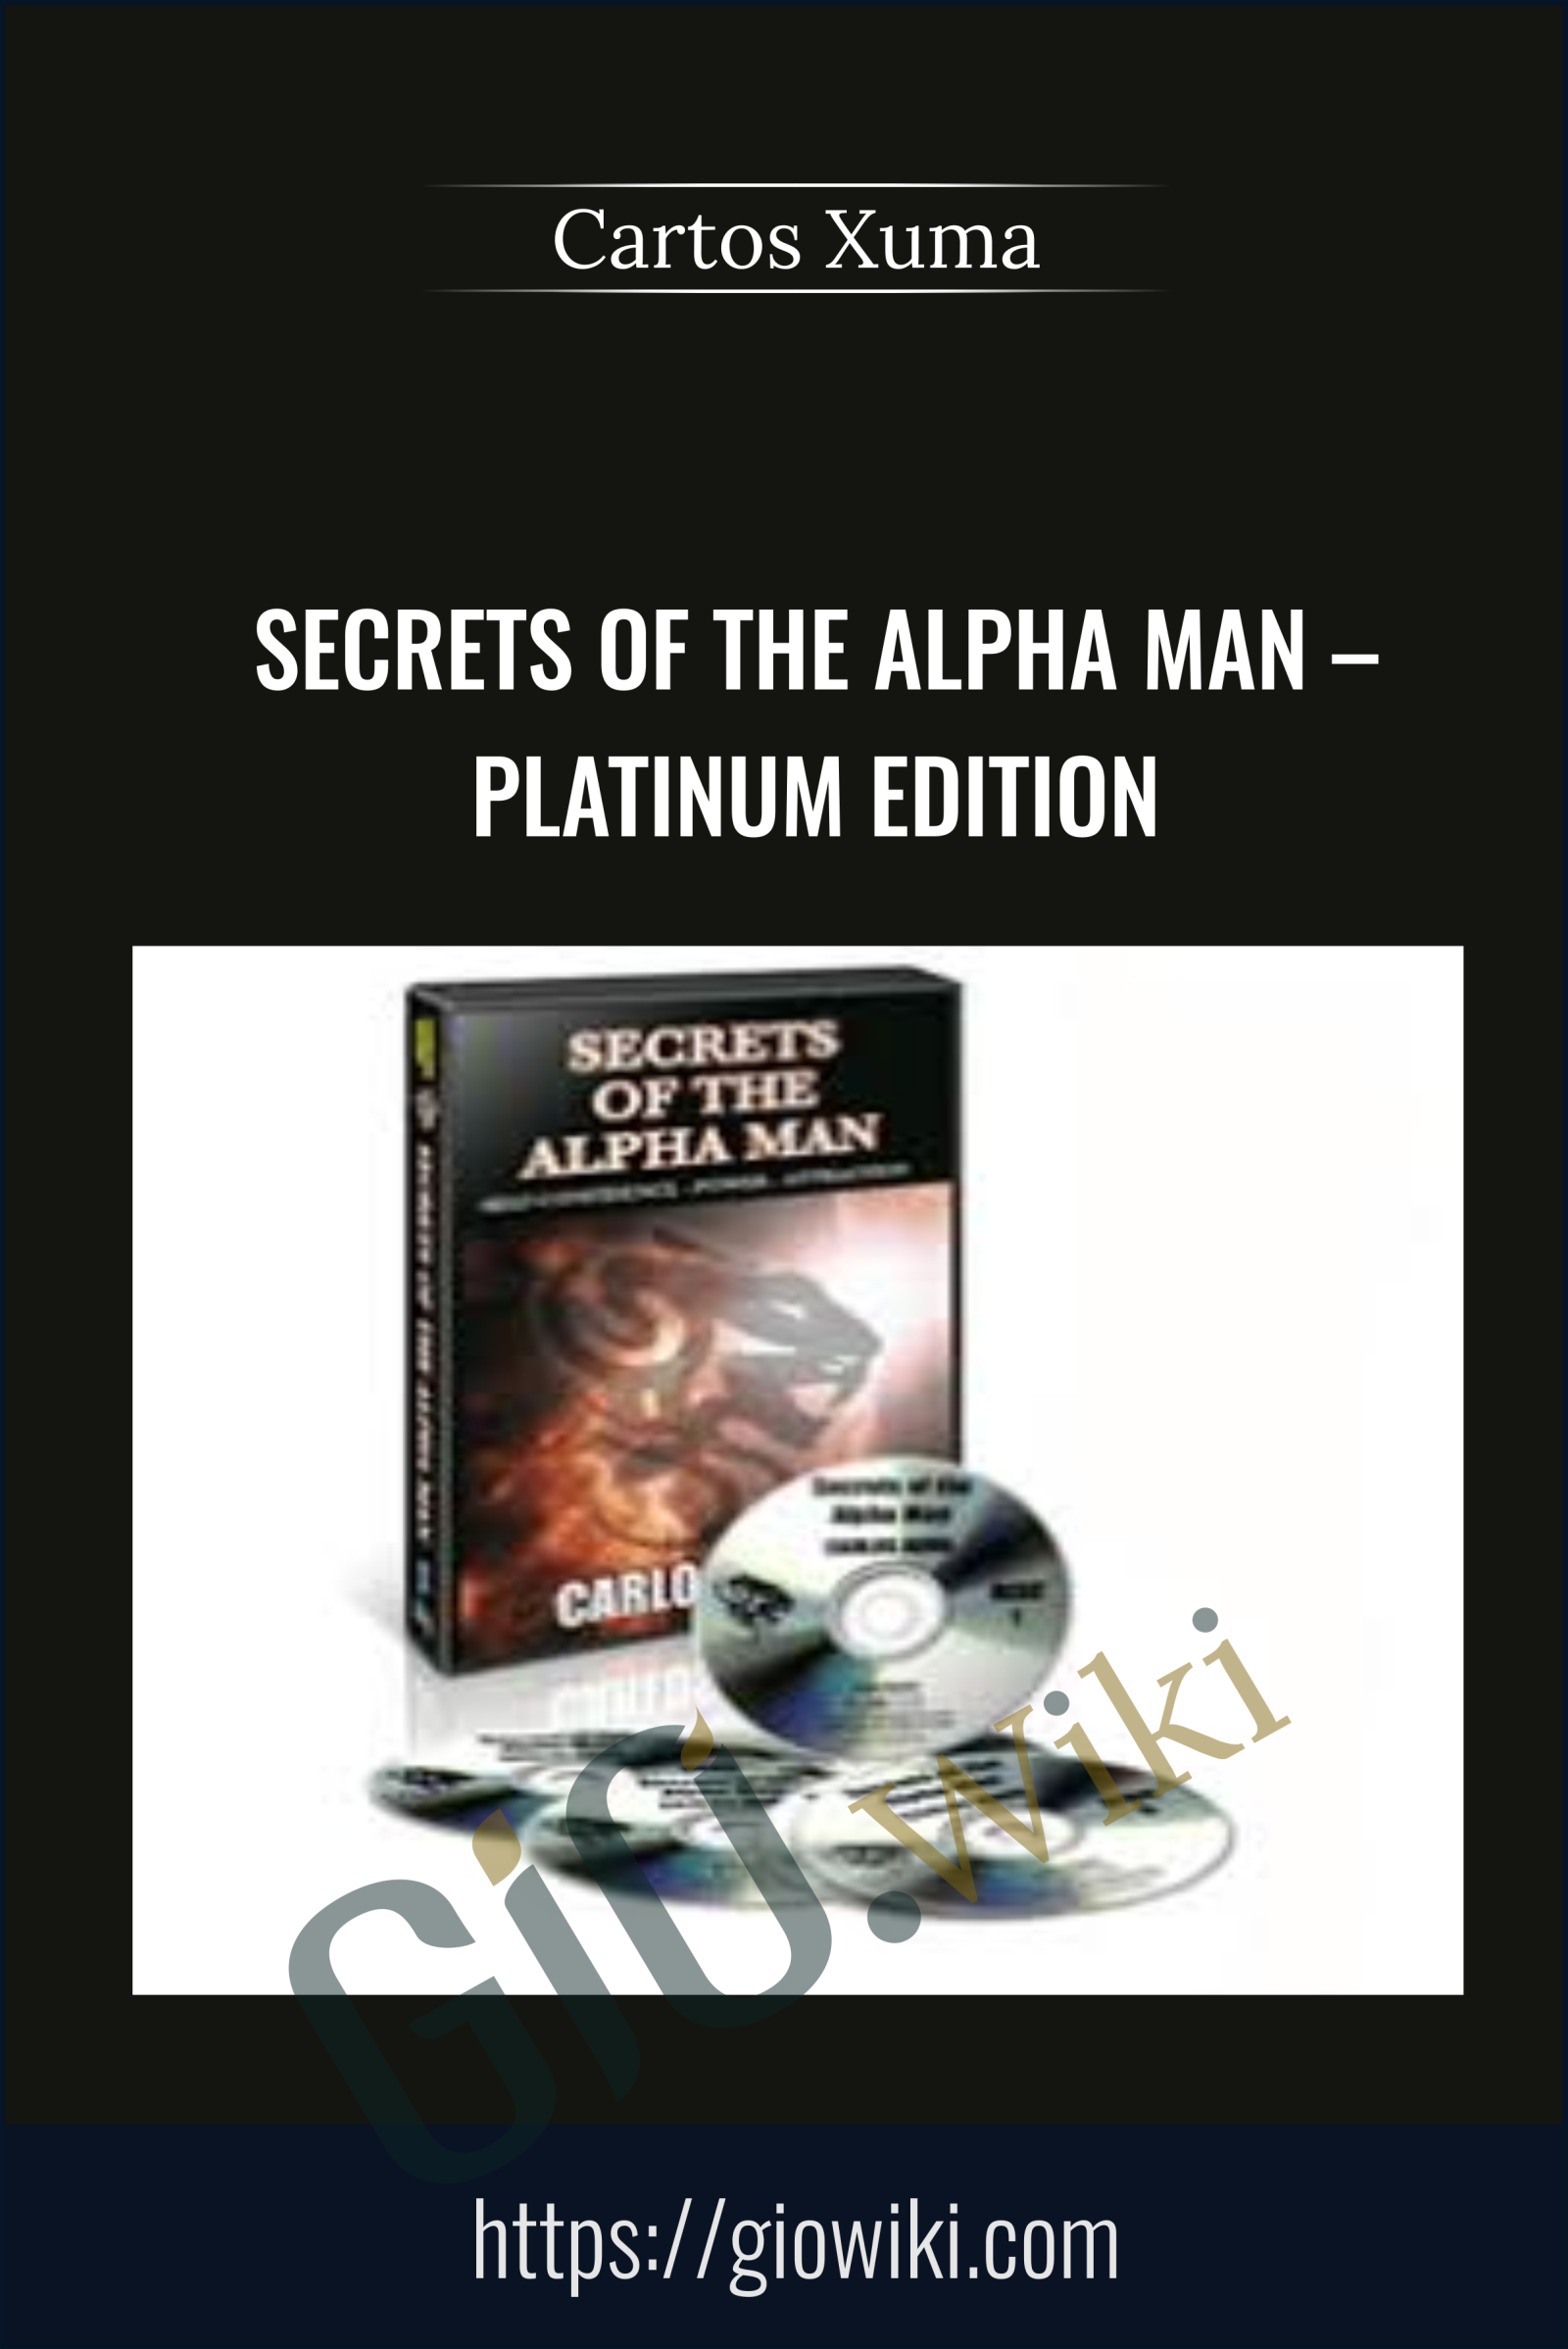 Secrets of the Alpha Man – Platinum Edition - Cartos Xuma